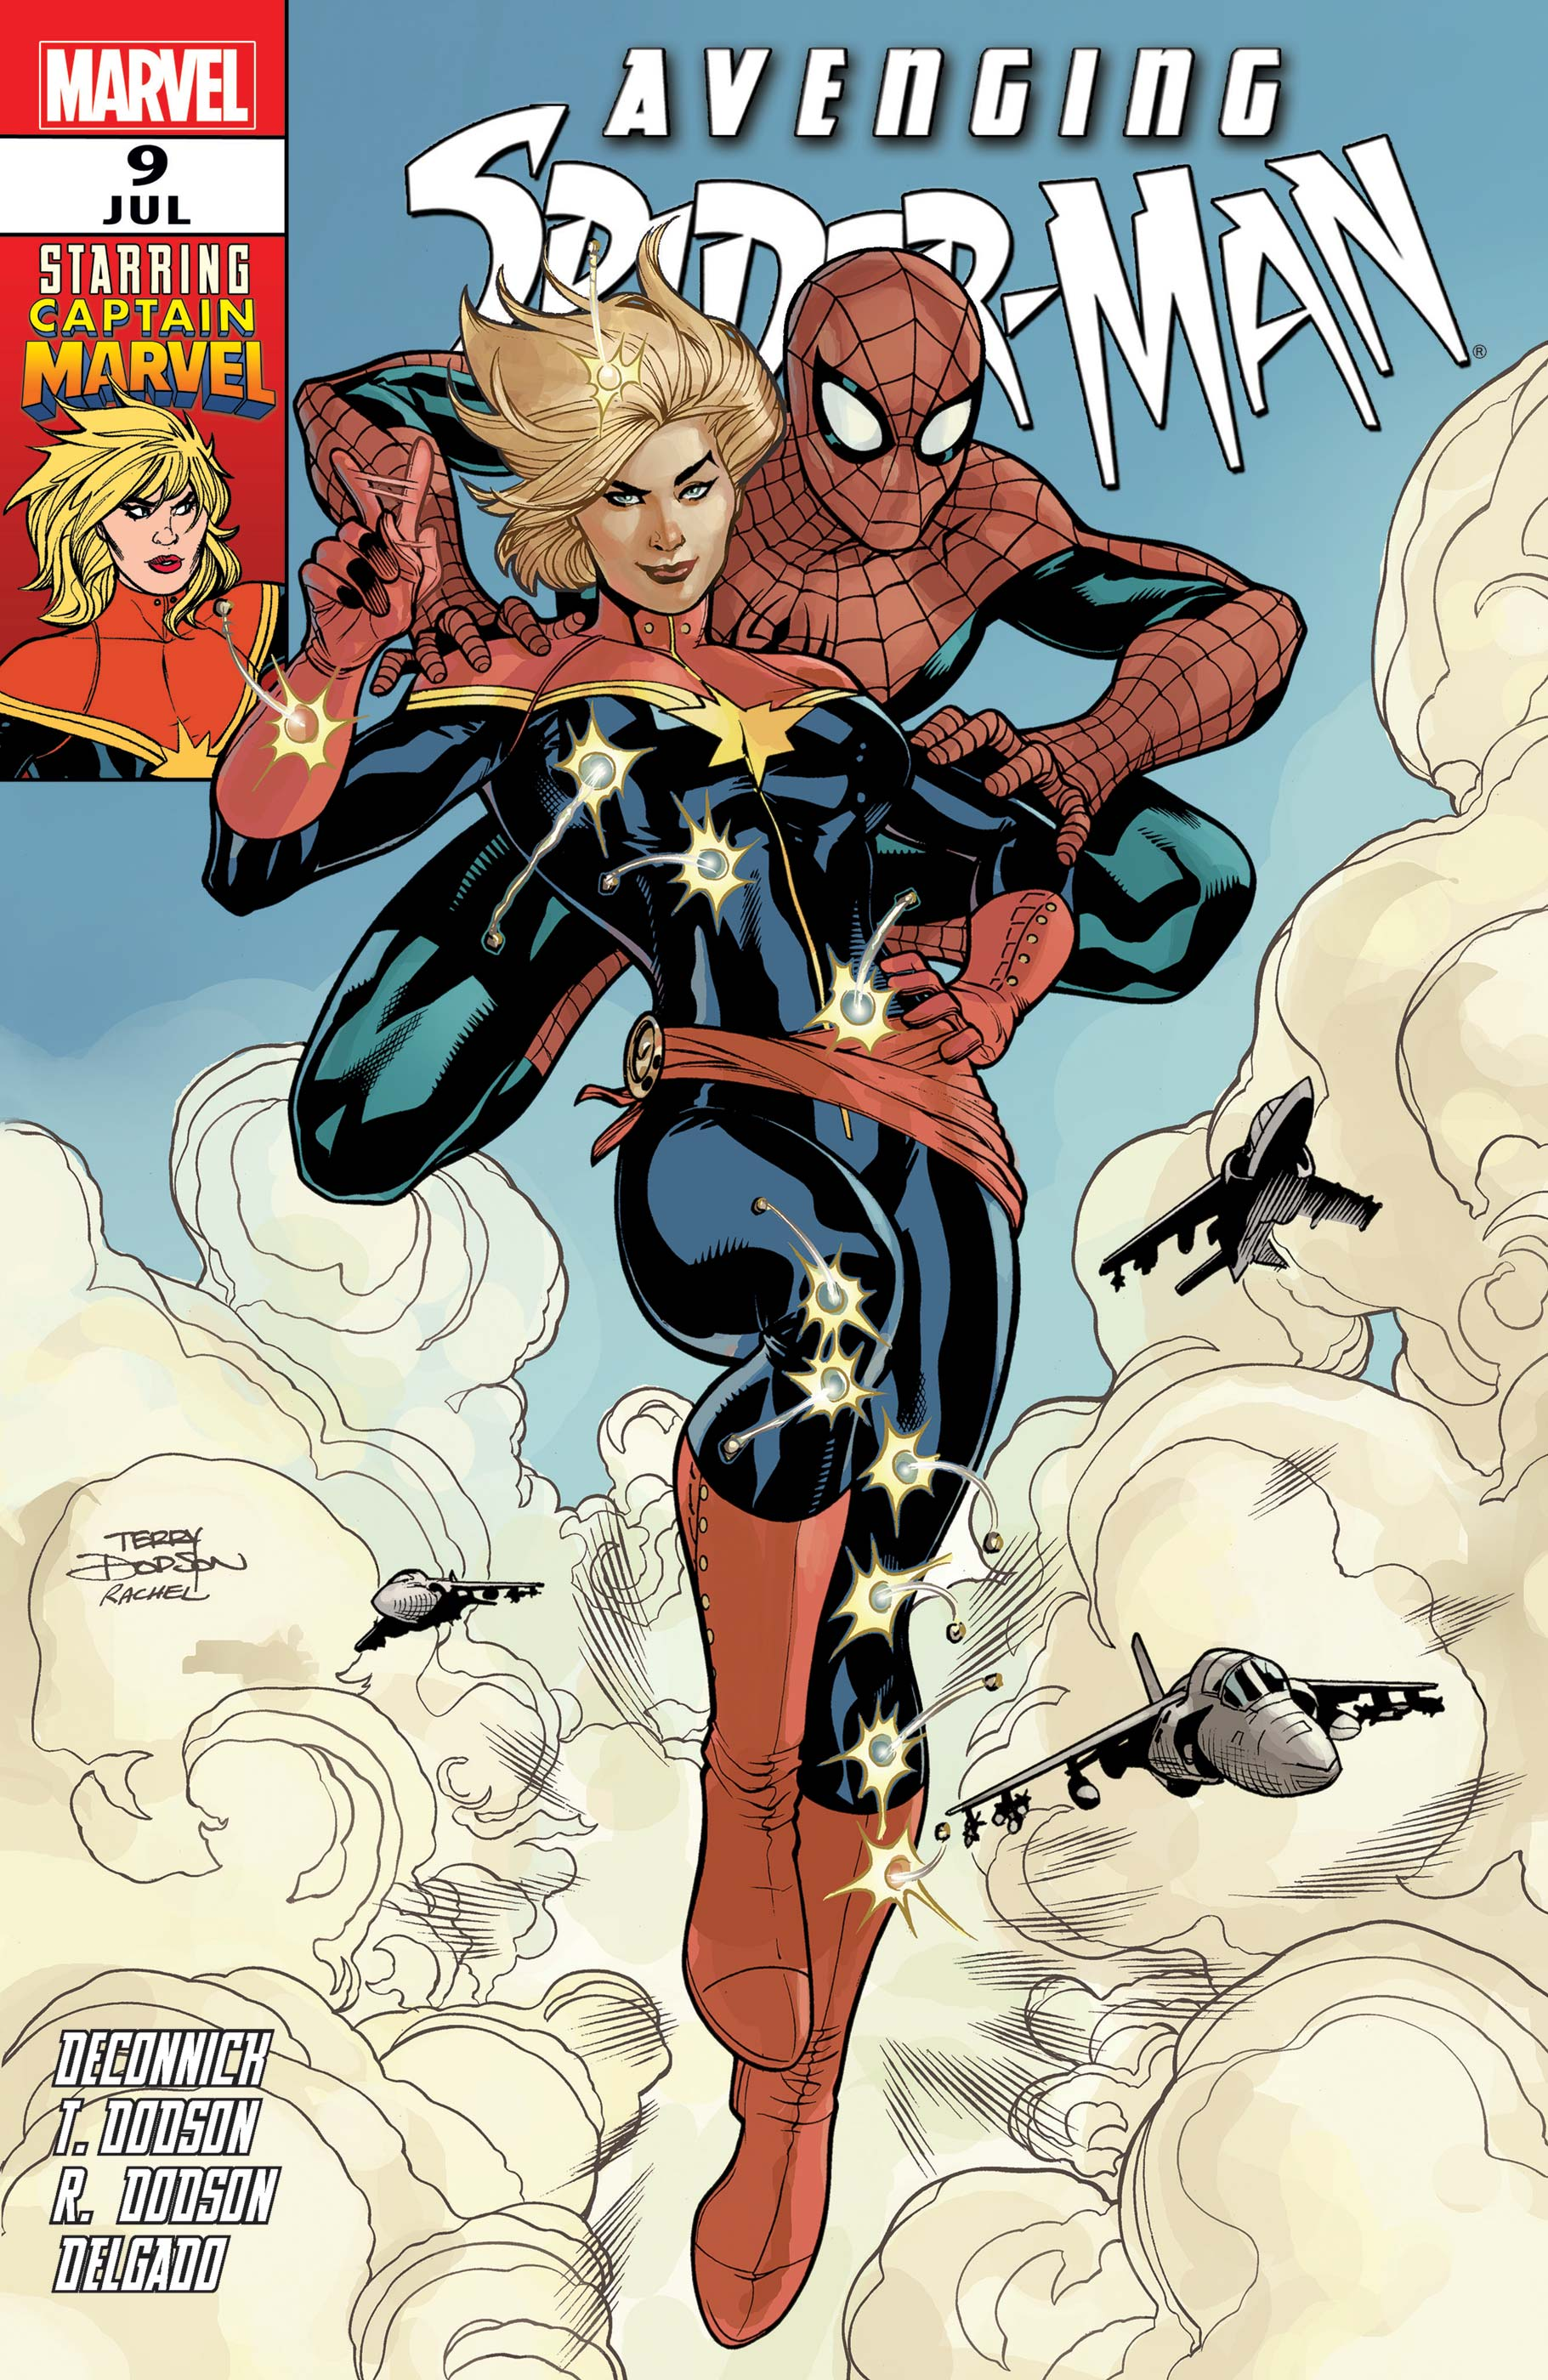 Avenging Spider-Man (2011) #9